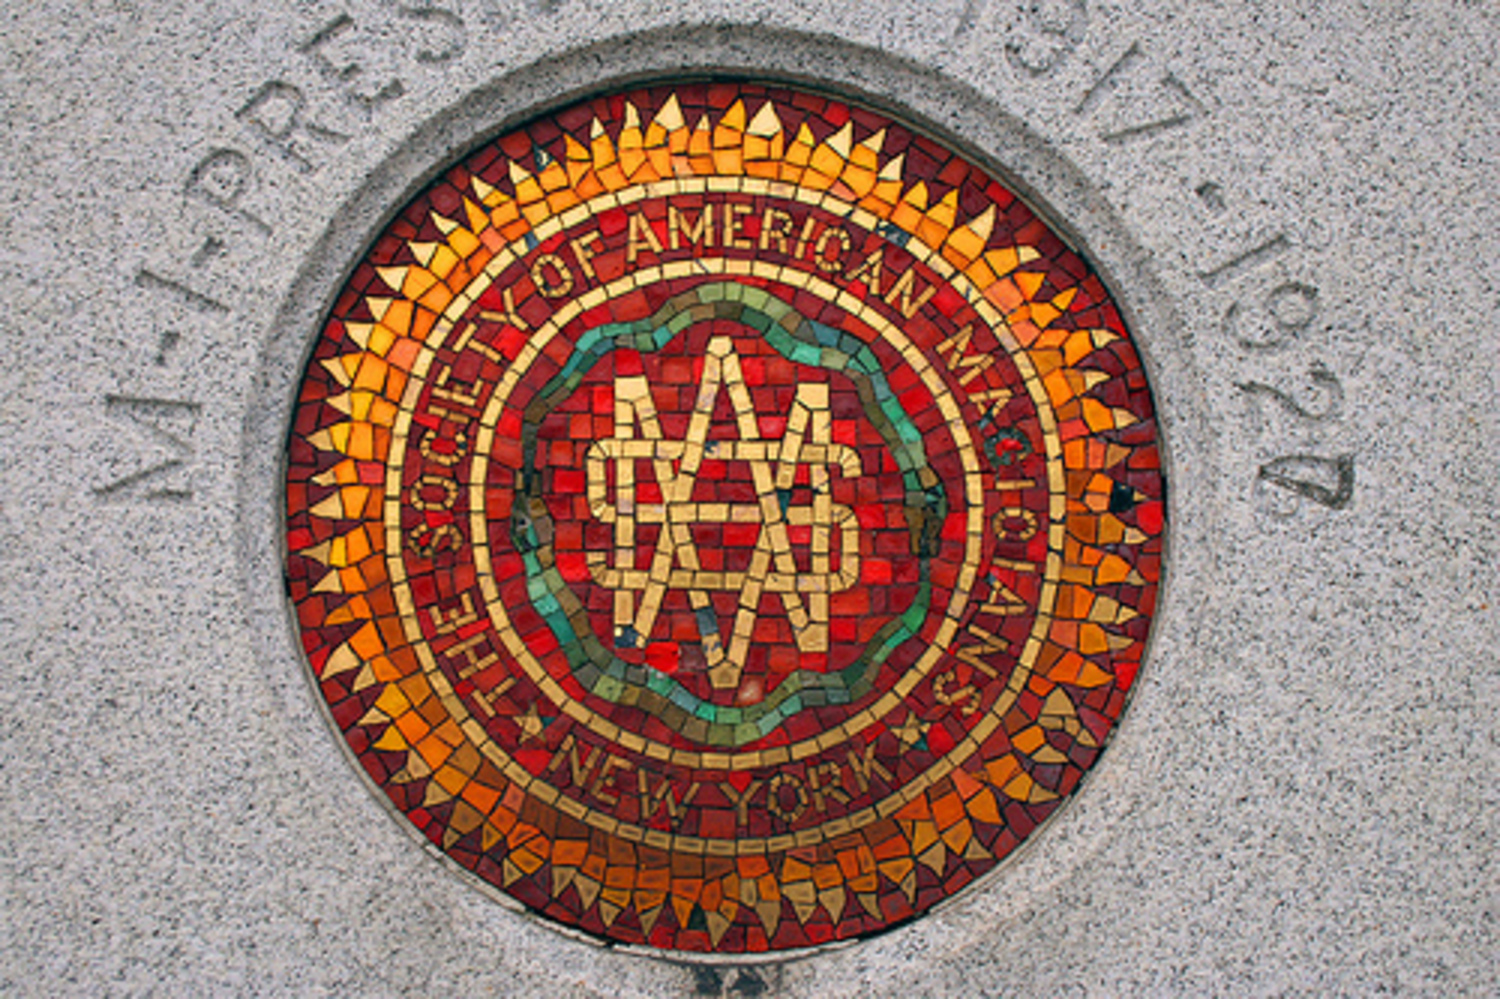 The Society of American Magicians' emblem on Houdini's monument.